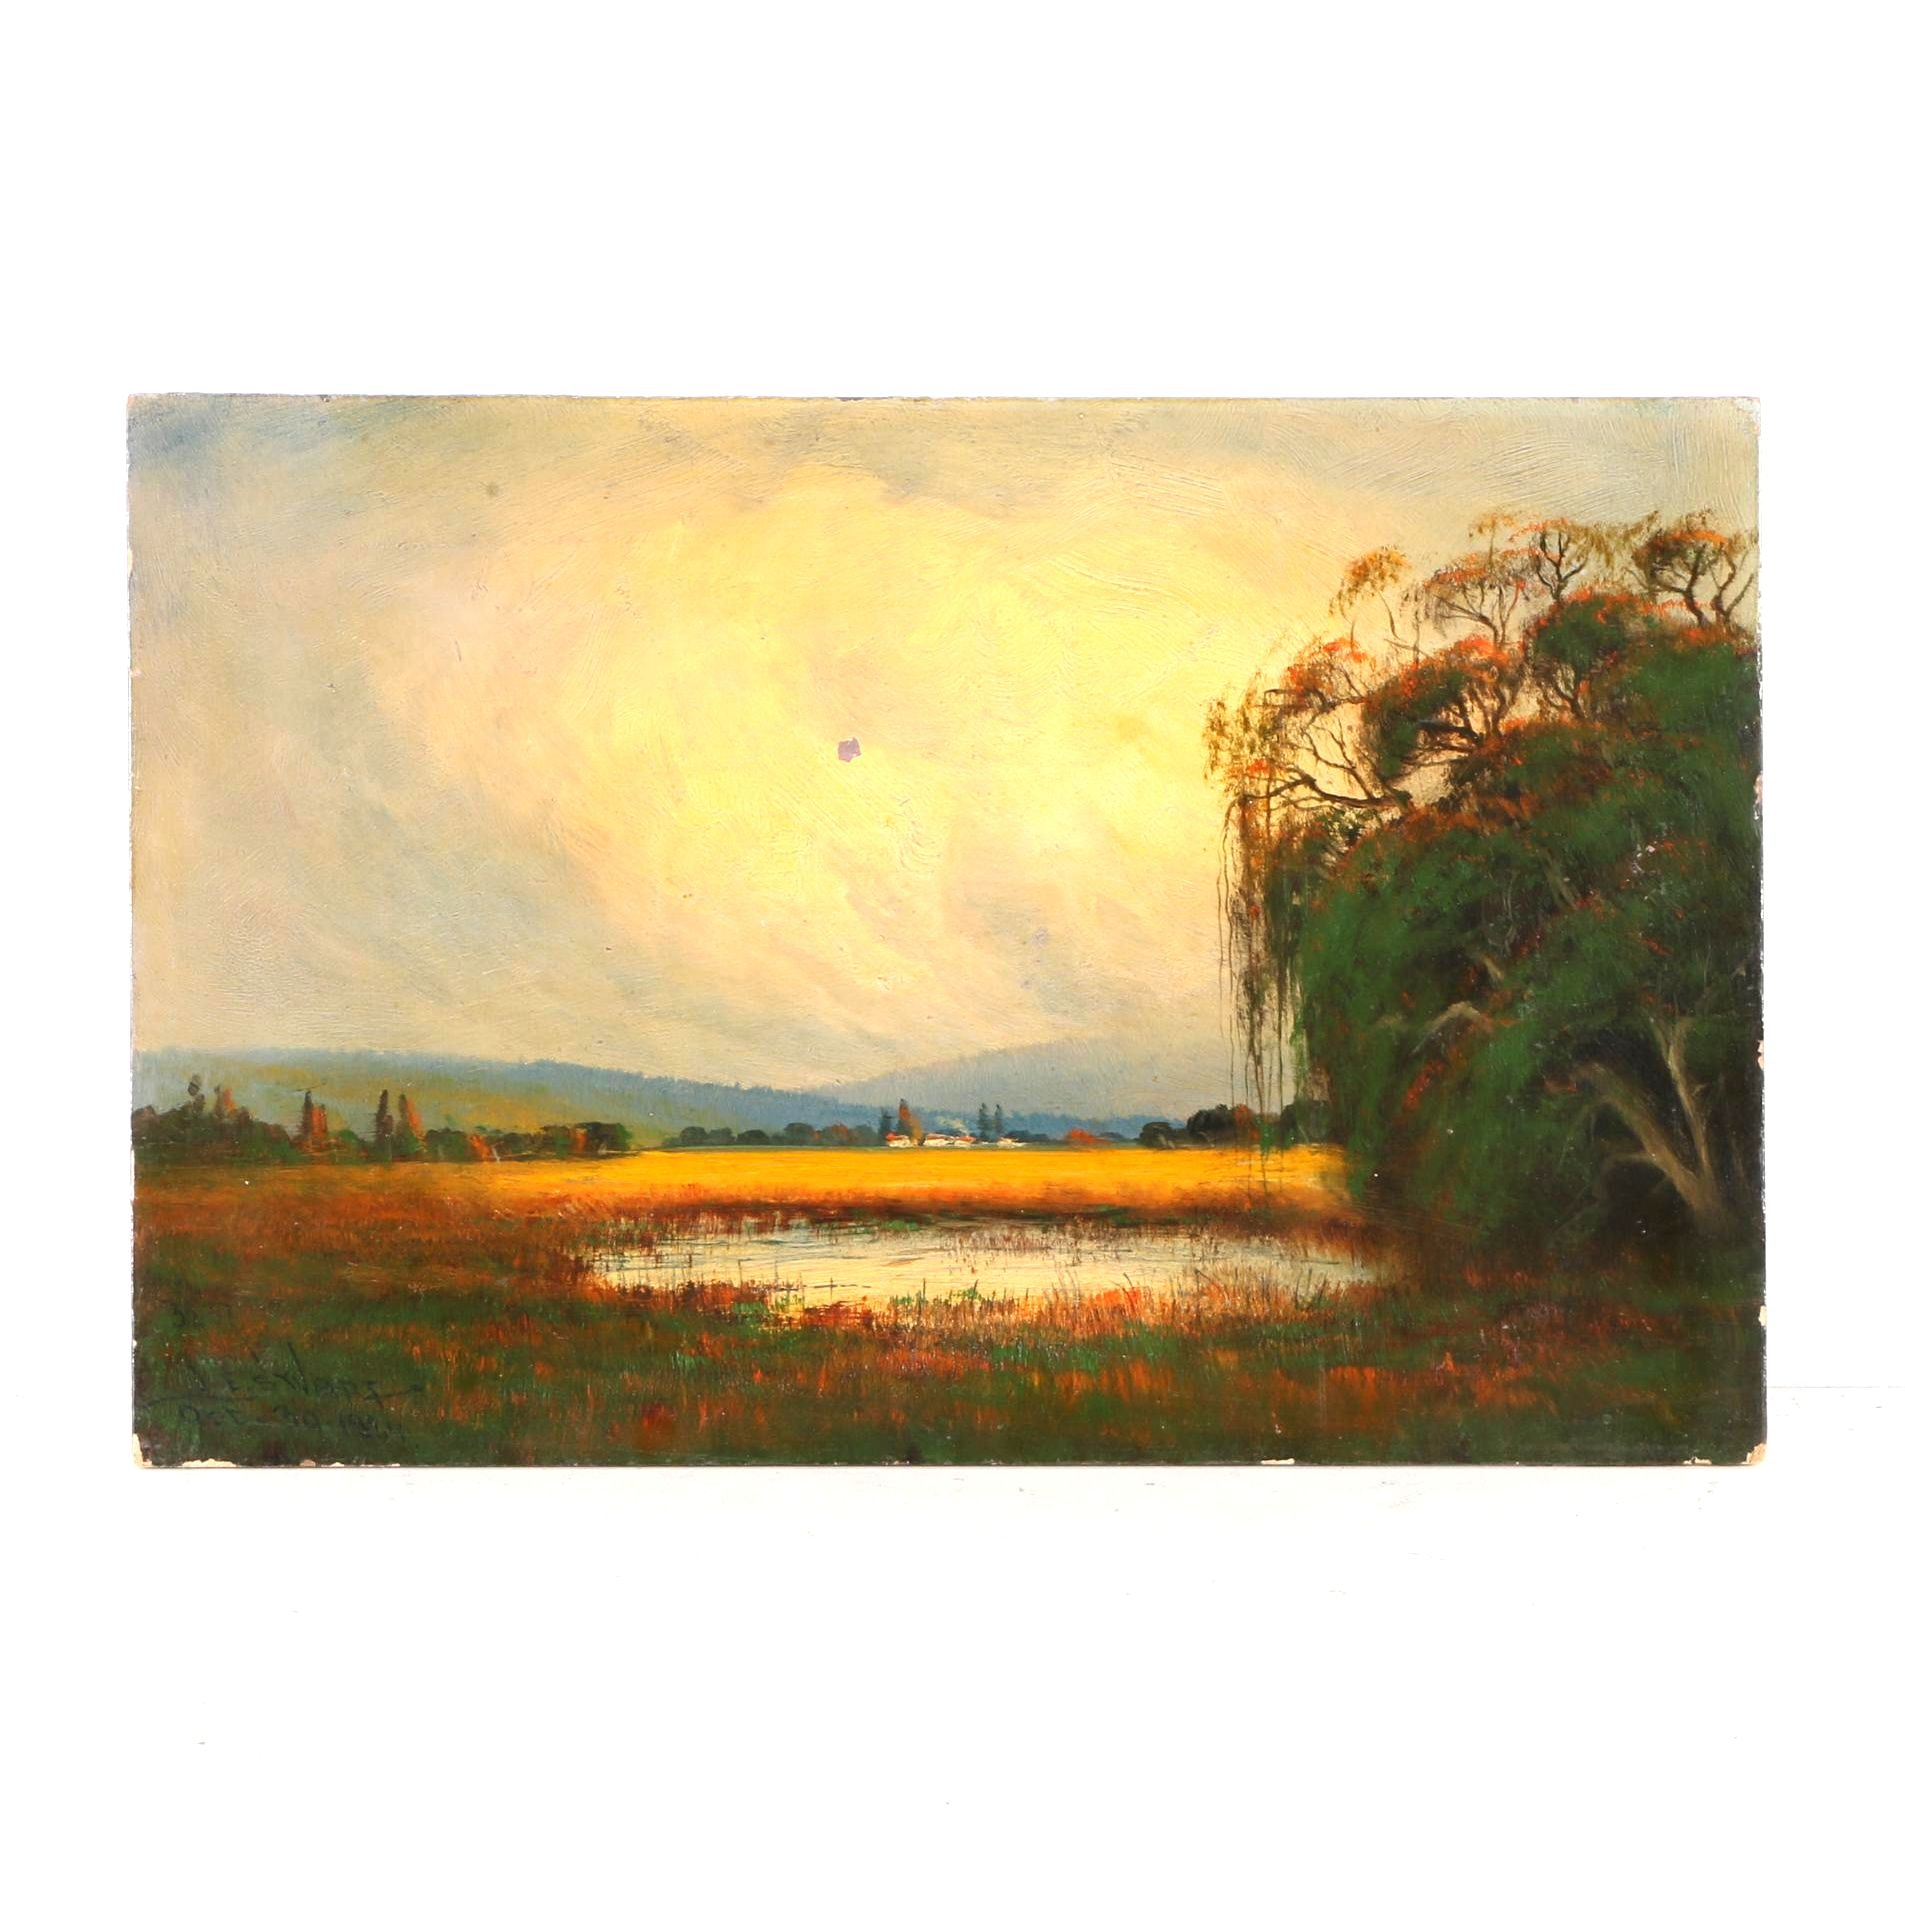 1924 James Everett Stuart Oil on Board of Landscape Near Watsonville, CA